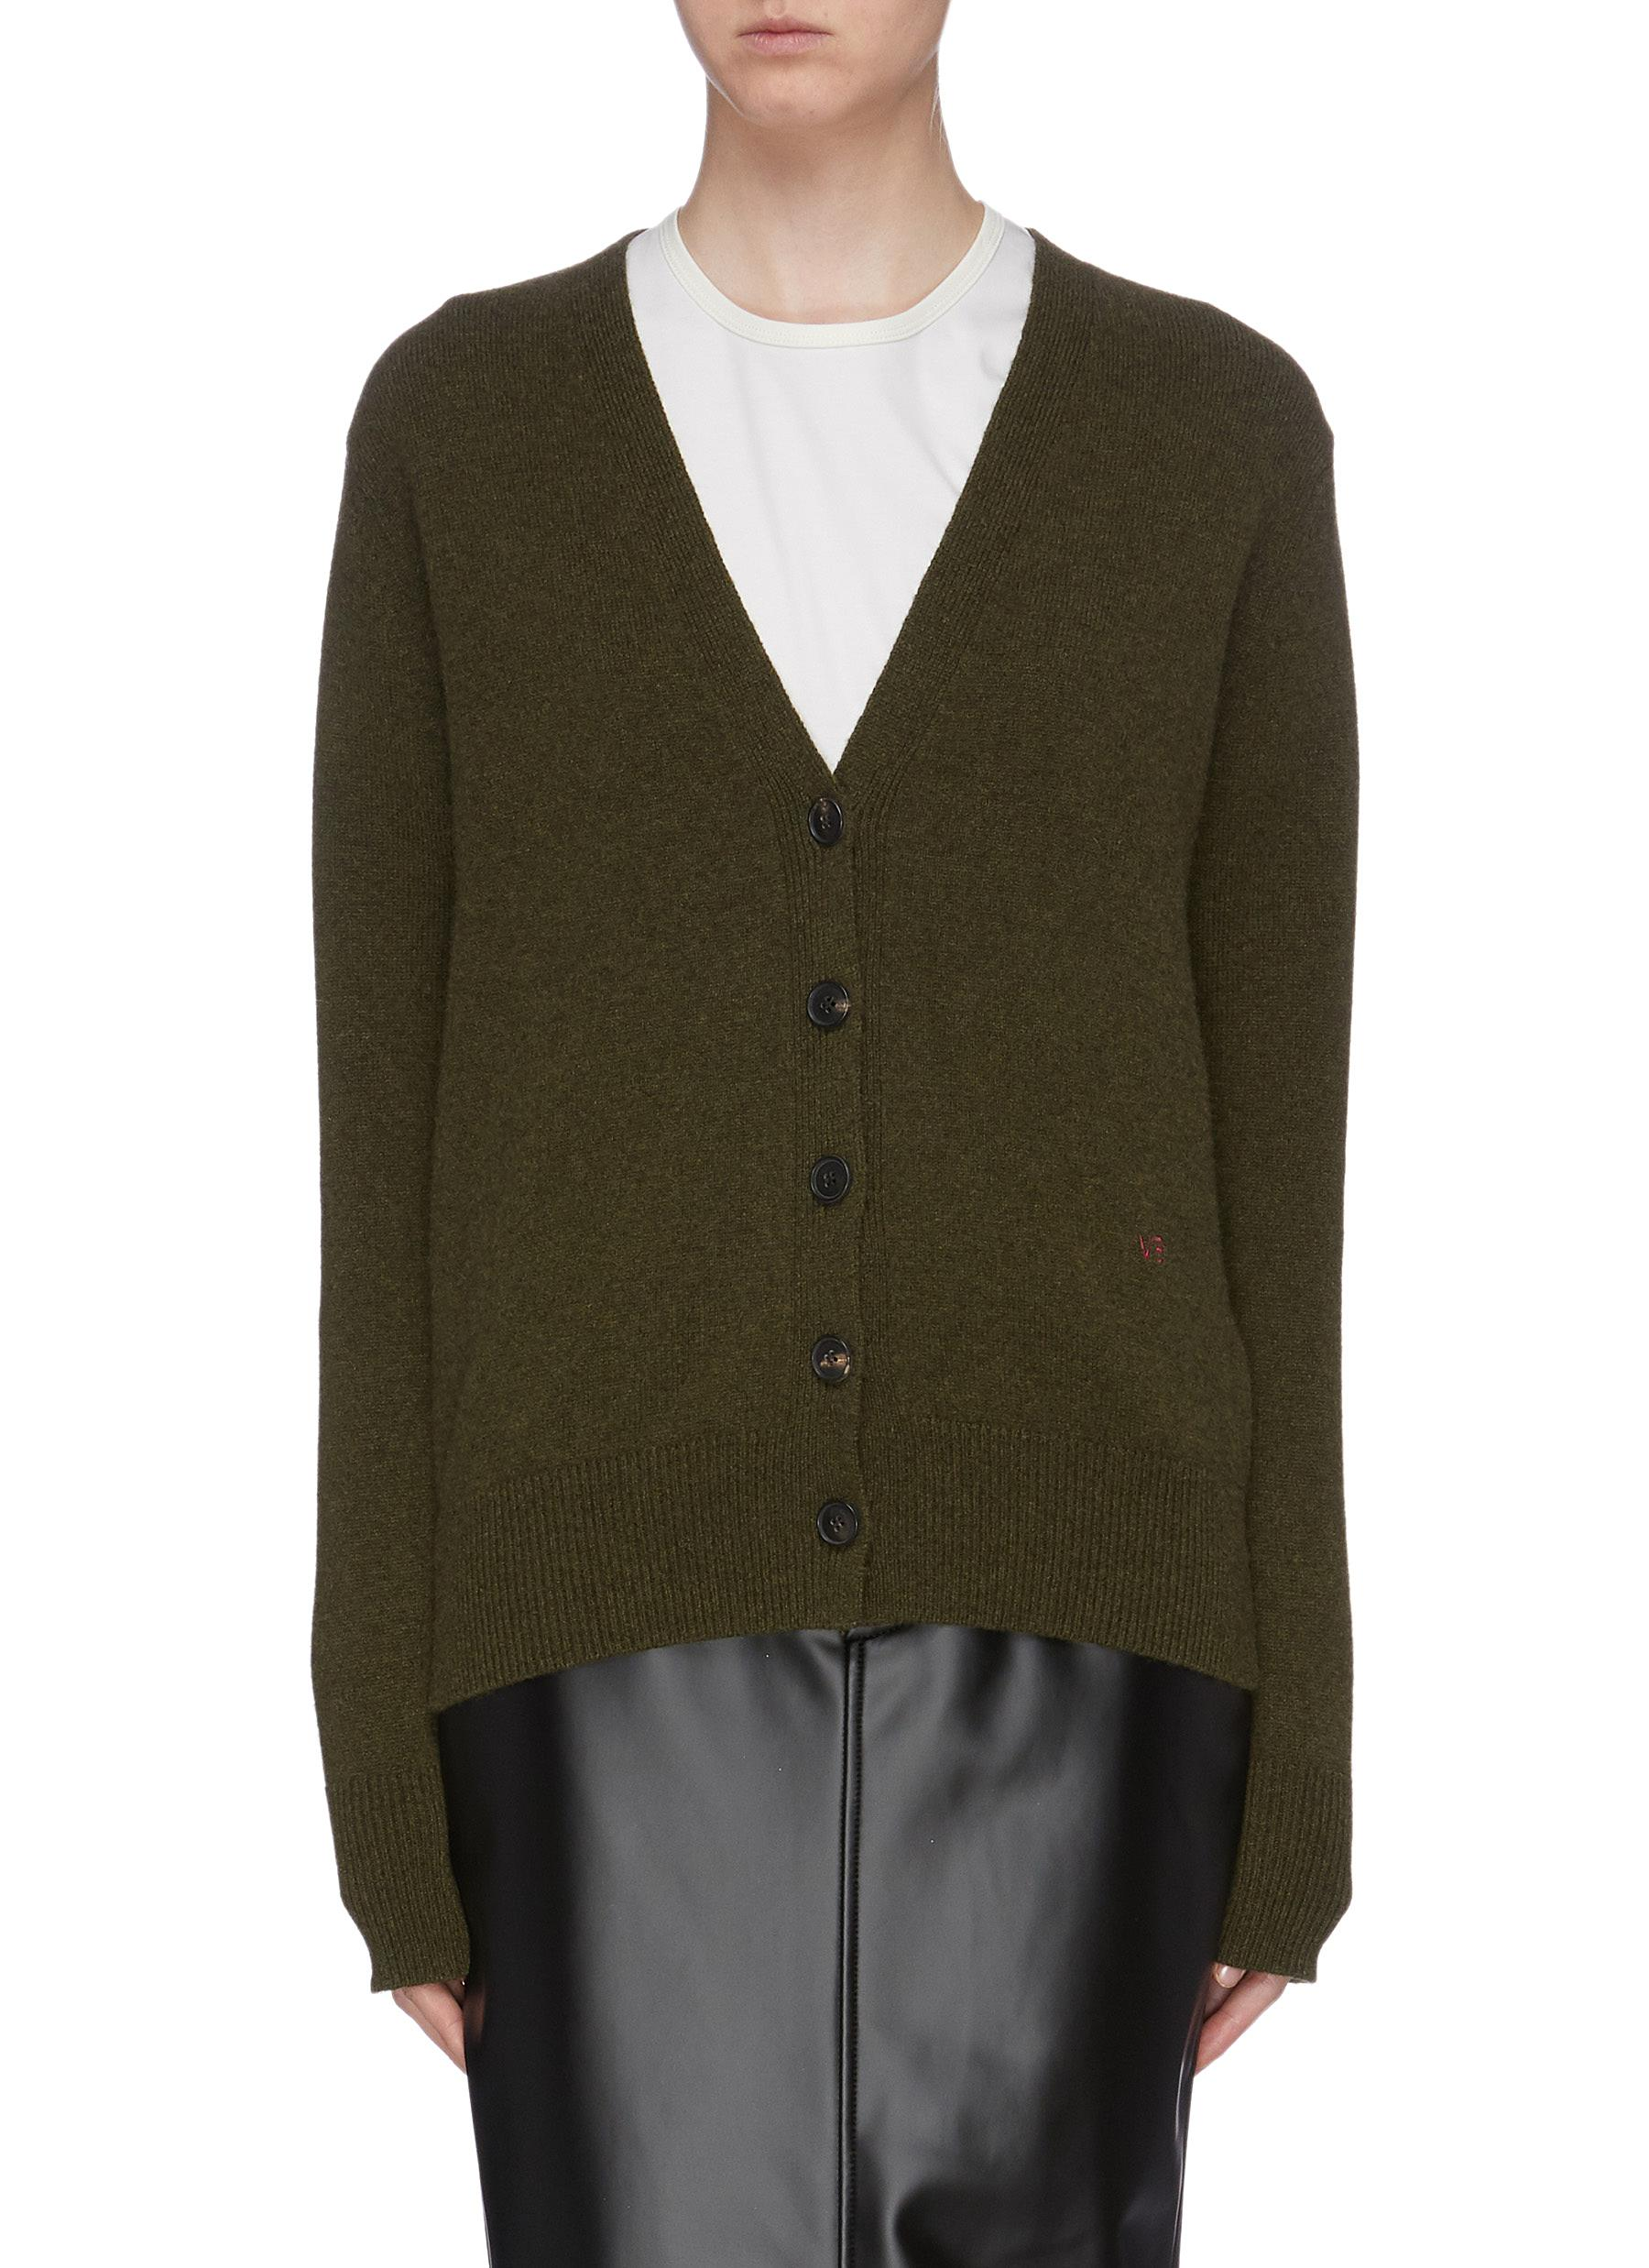 Logo embroidered cashmere cardigan by Victoria Beckham